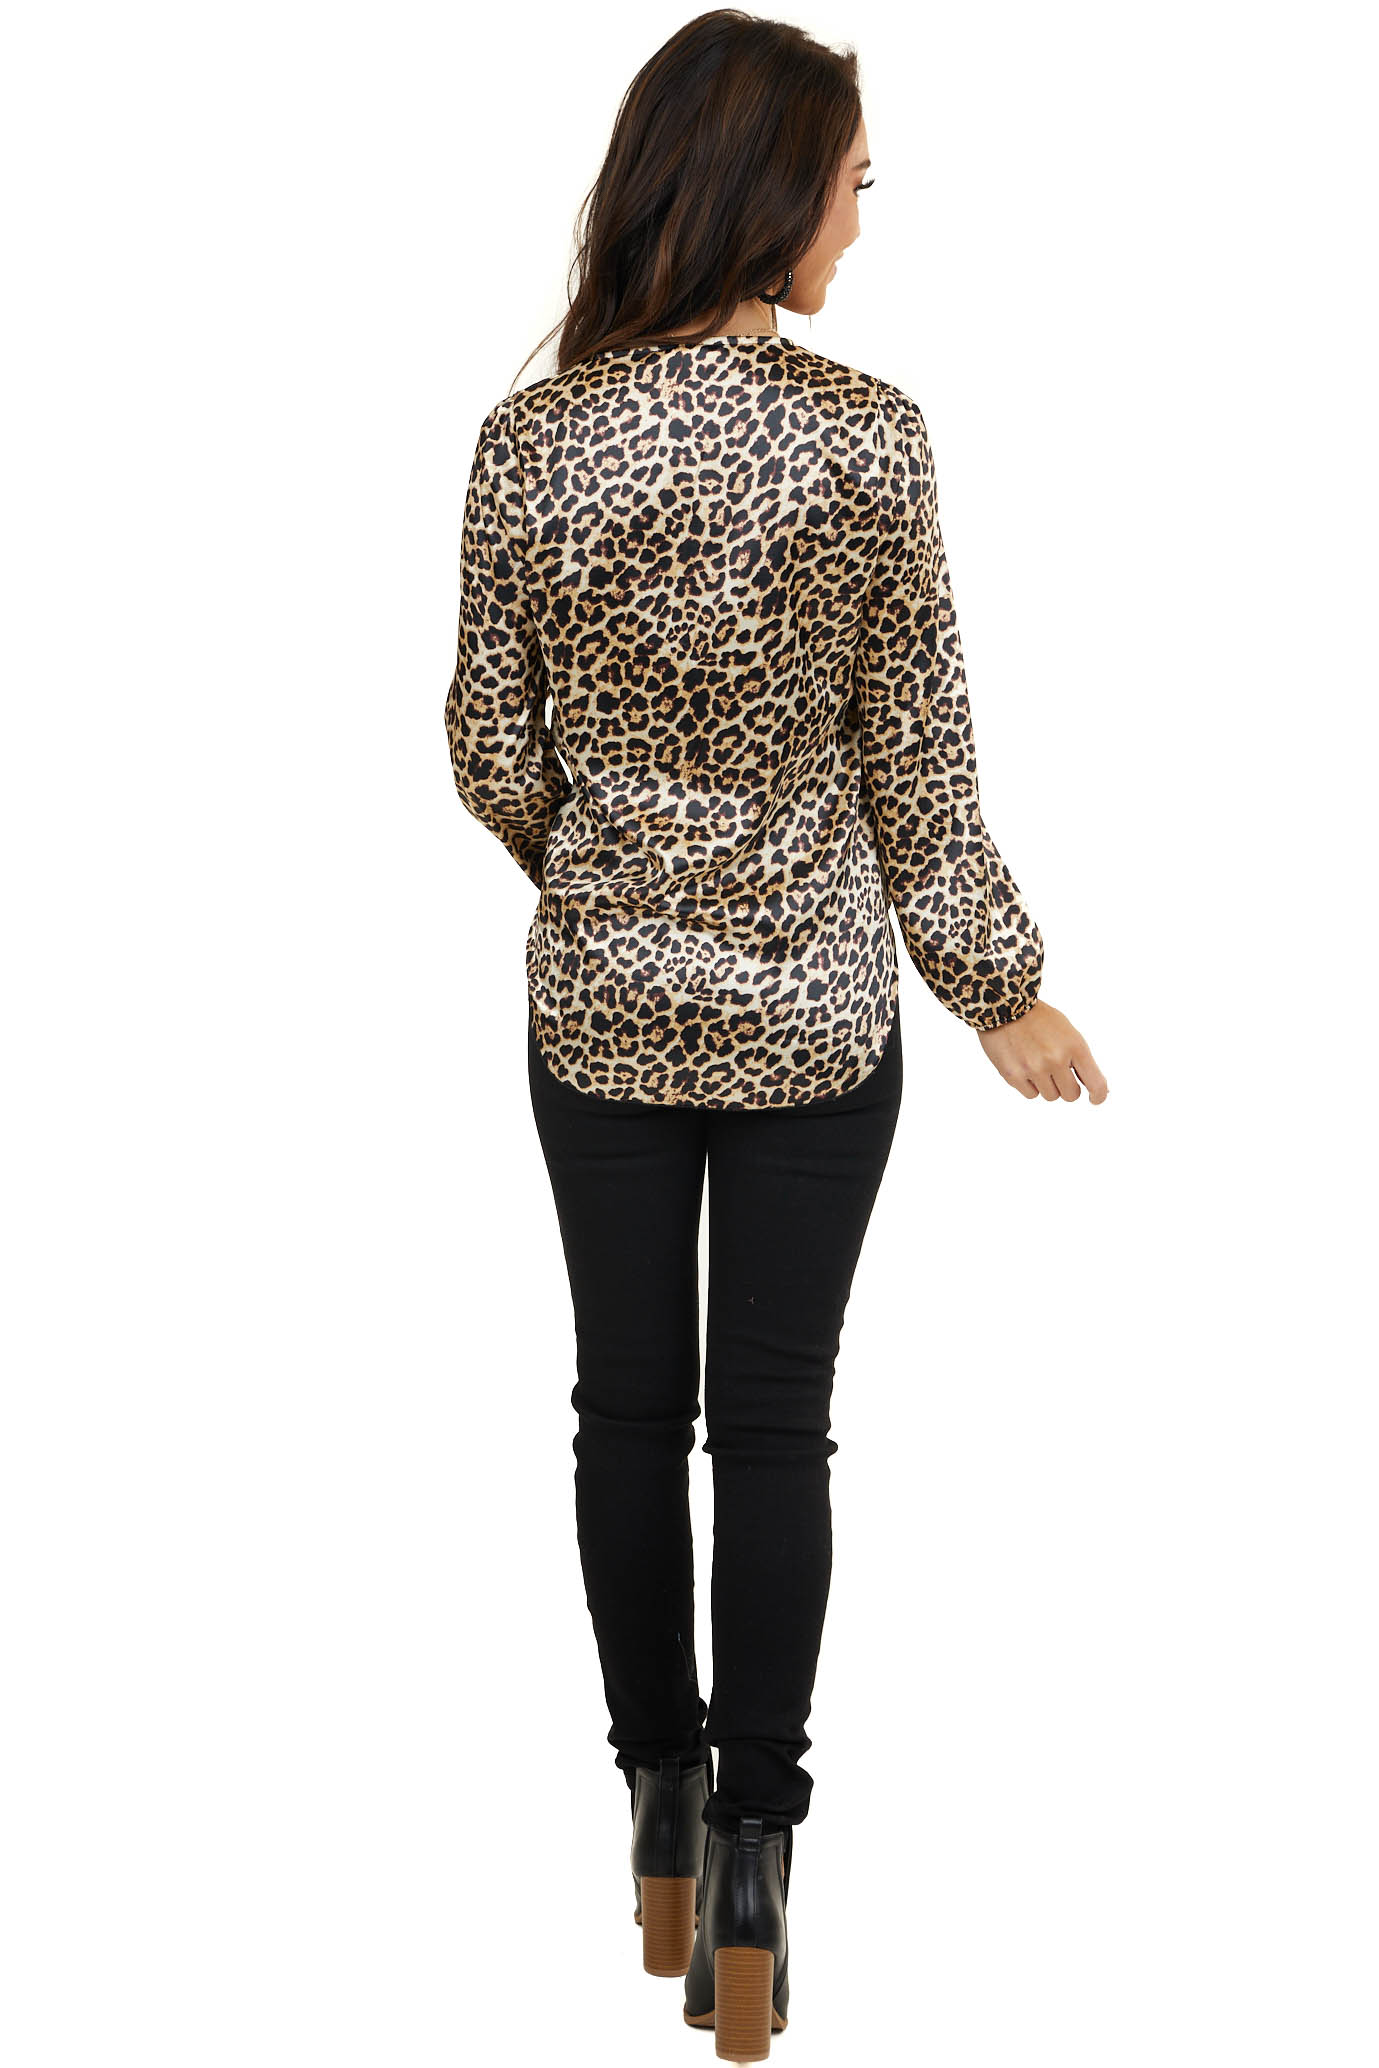 Cream and Black Leopard Print Silky Long Sleeve Surplice Top